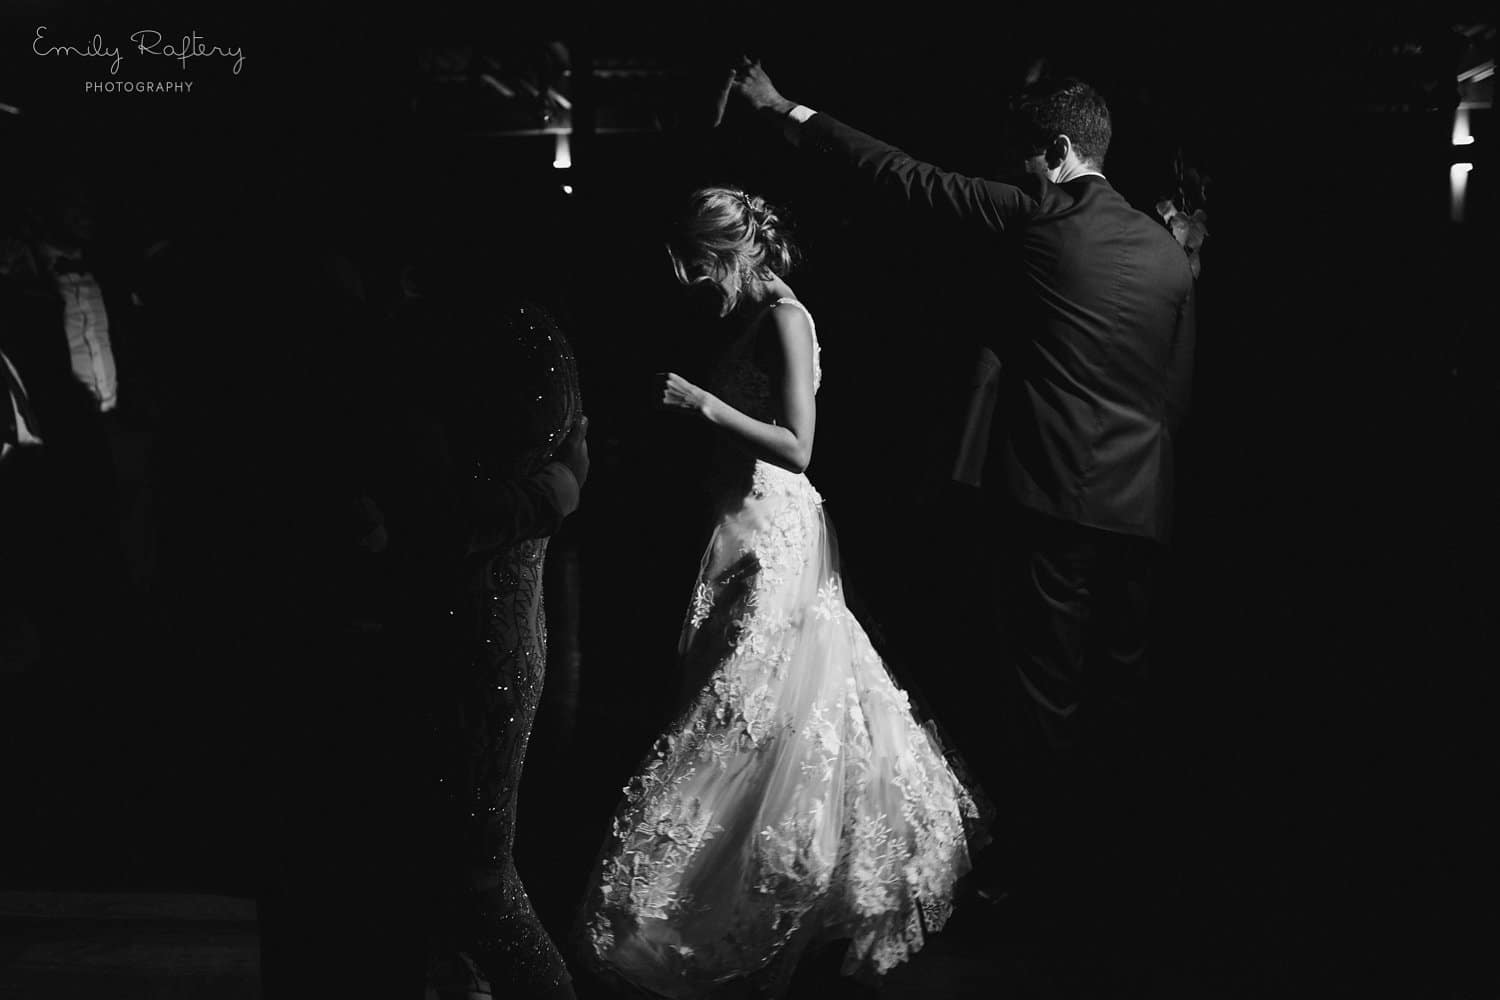 Real Weddings | Vinka Design | Real Brides Wearing Vinka Gowns | Helena and Tim dancing at reception in dim light with beautiful bespoke white dress with lace detail flowing and shining in b